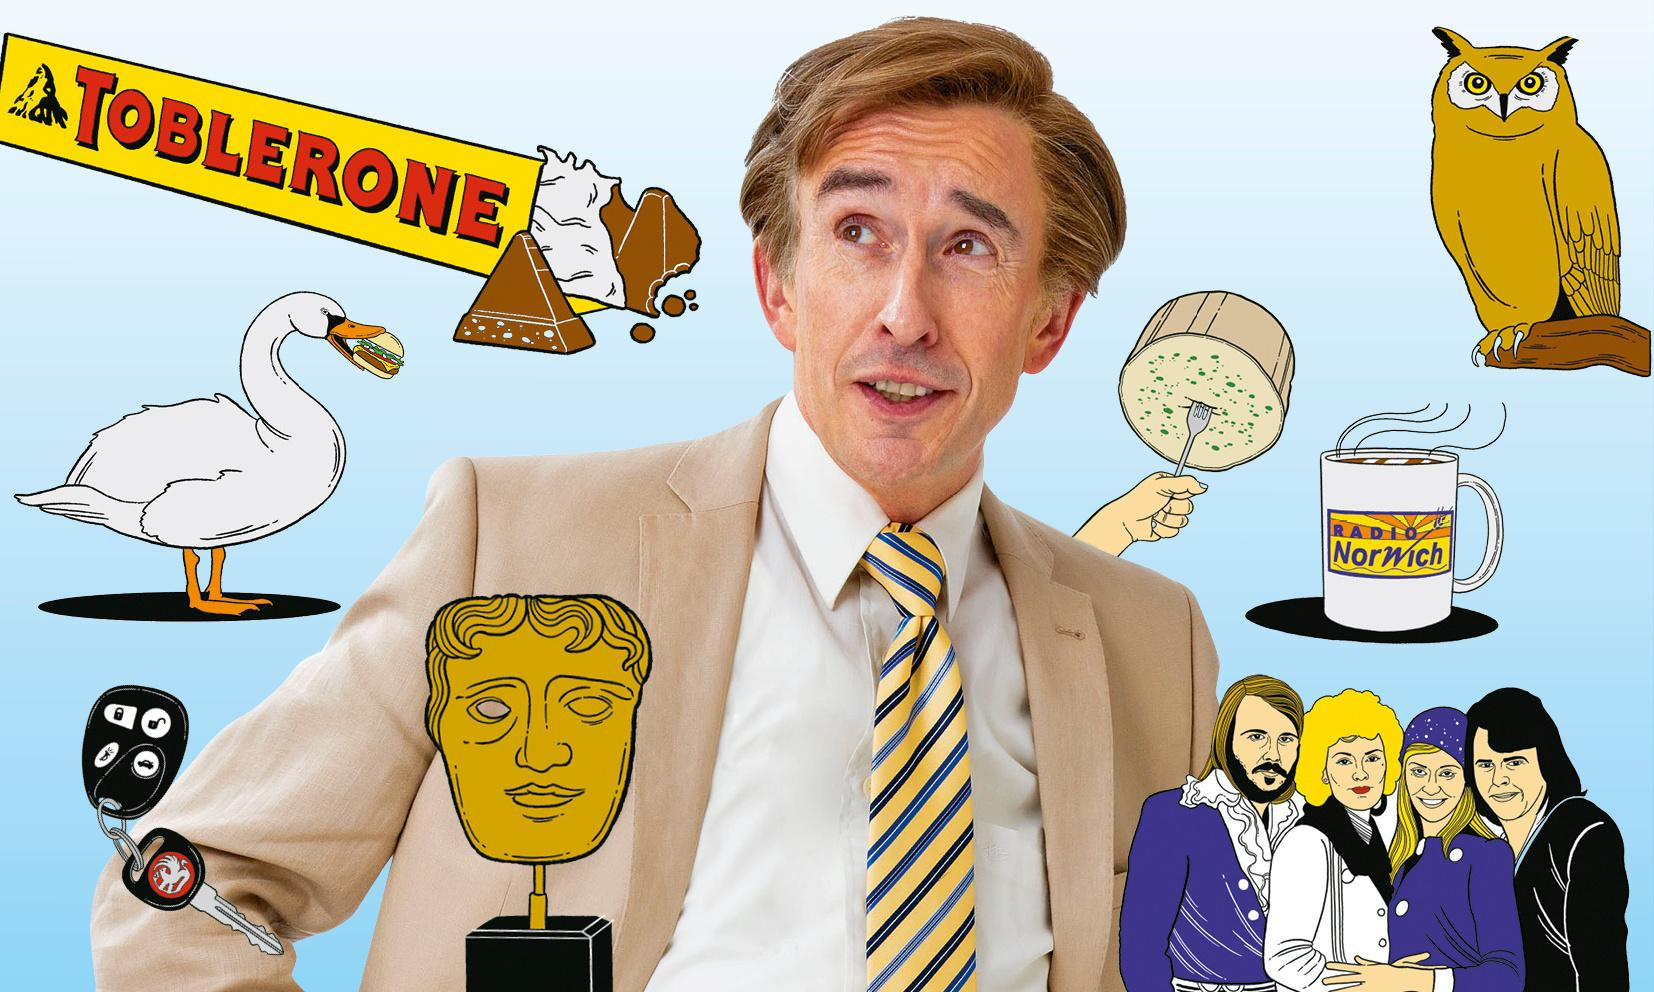 From 'Aha!' to zombies: the encyclopedia of Alan Partridge